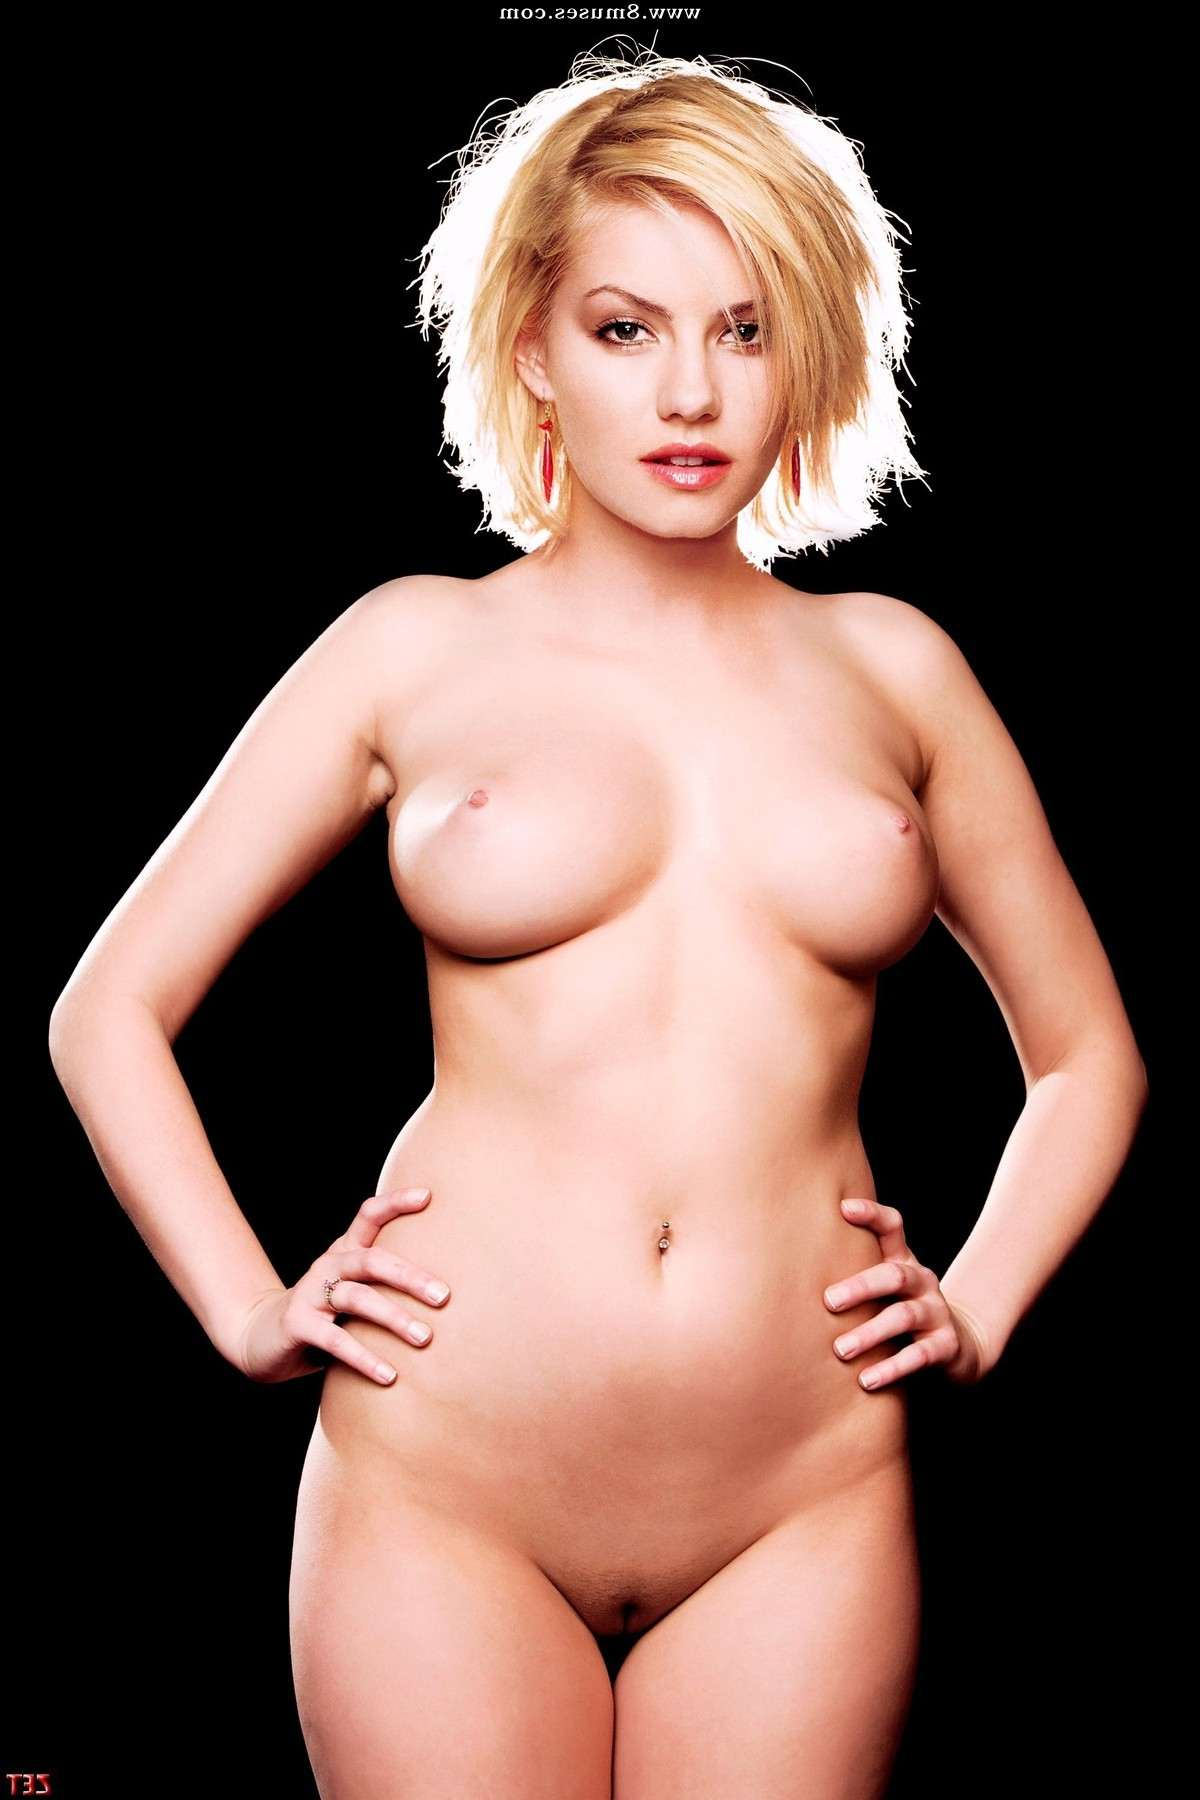 Fake-Celebrities-Sex-Pictures/Elisha-Cuthbert Elisha_Cuthbert__8muses_-_Sex_and_Porn_Comics_303.jpg